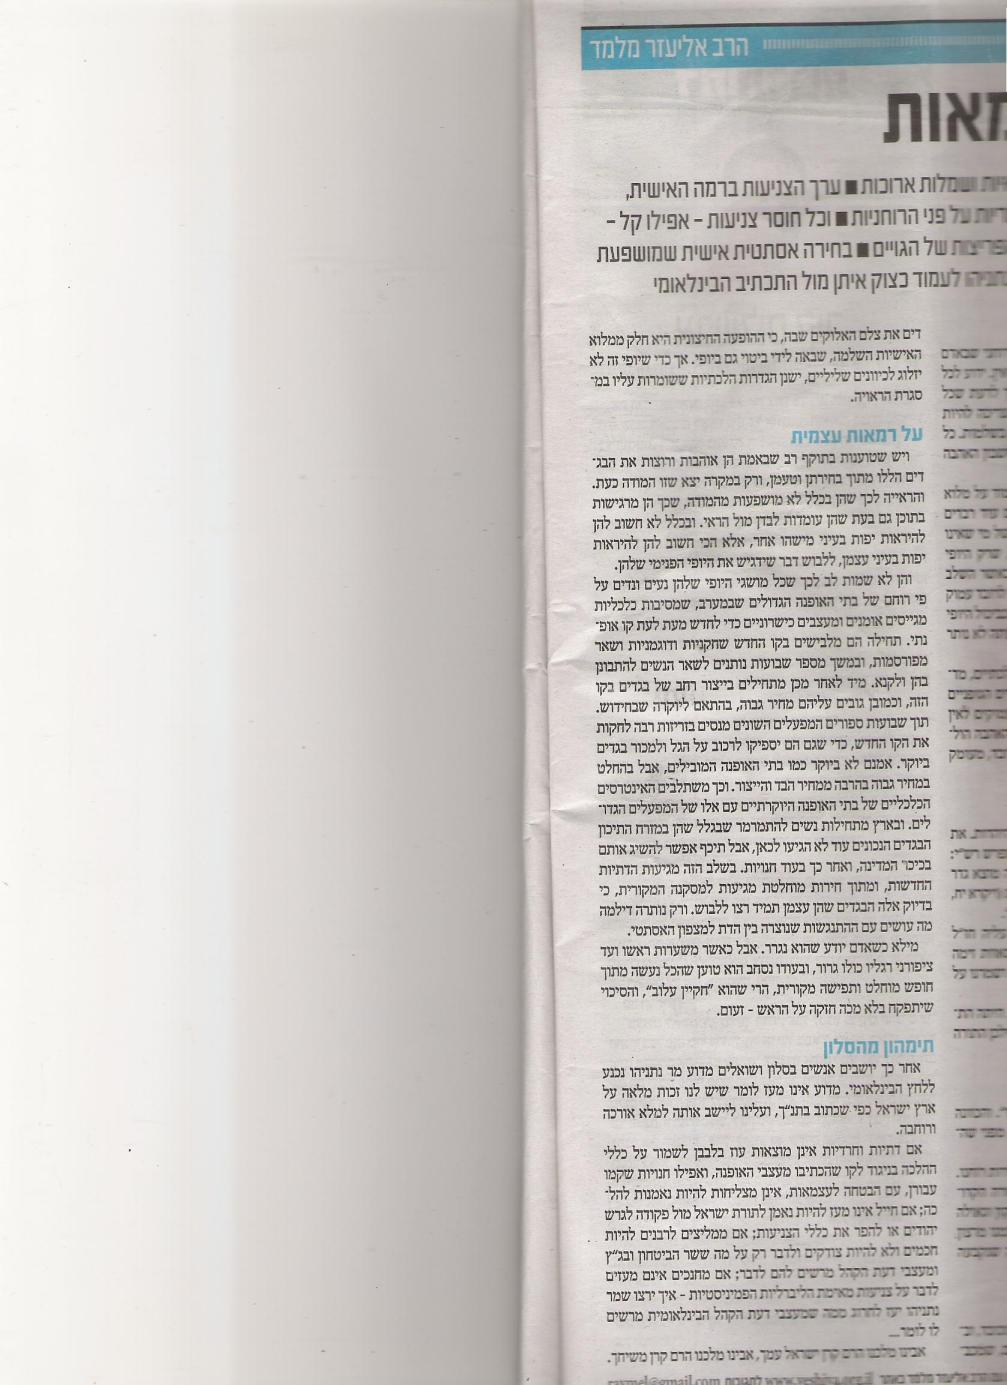 R. Melamed article from BeSheva on Tzniut, part II